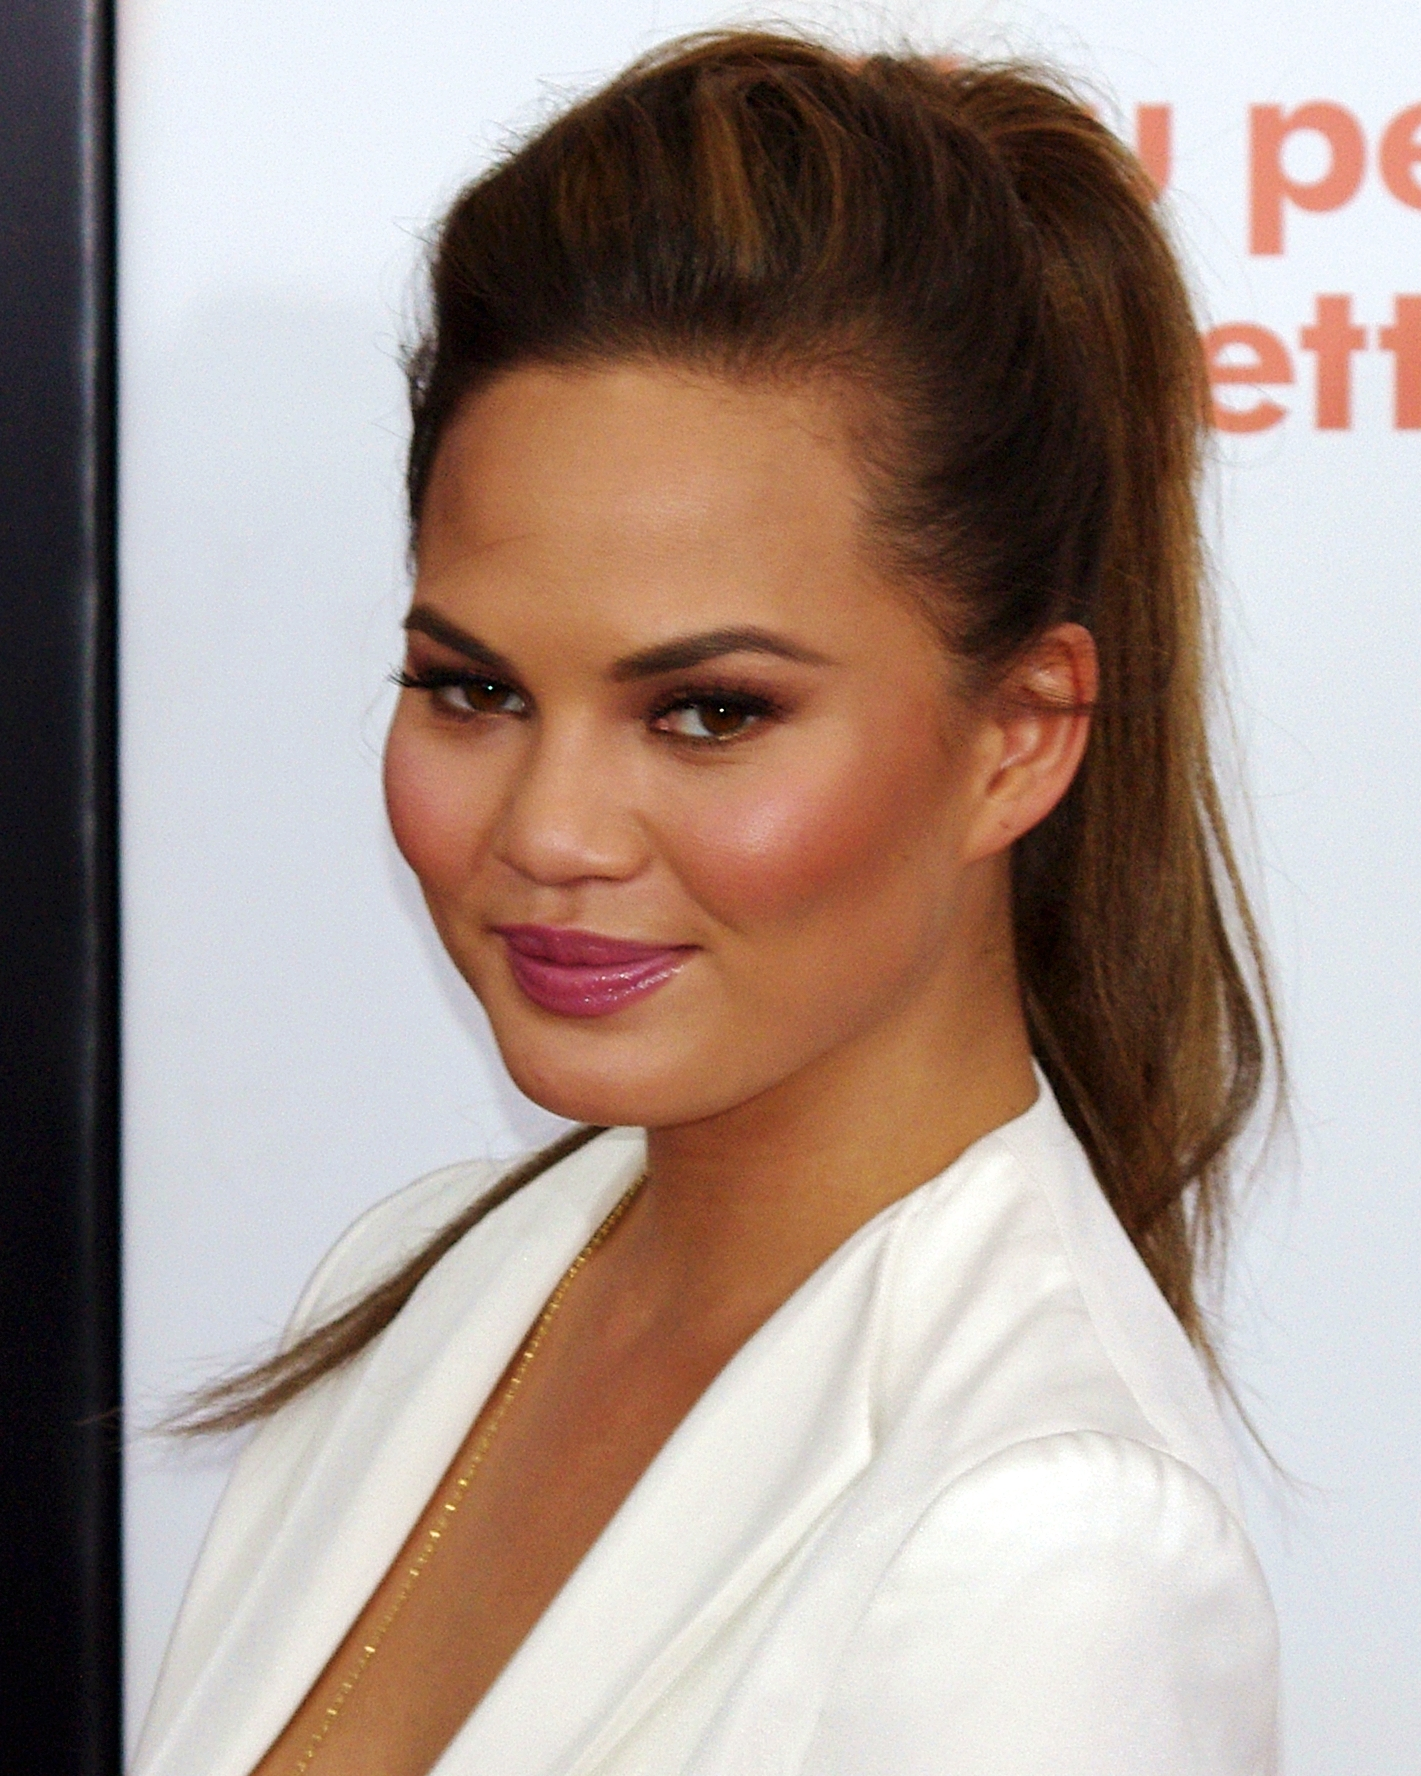 The 32-year old daughter of father (?) and mother Vilailuck Teigen Chrissy Teigen in 2018 photo. Chrissy Teigen earned a  million dollar salary - leaving the net worth at 2 million in 2018